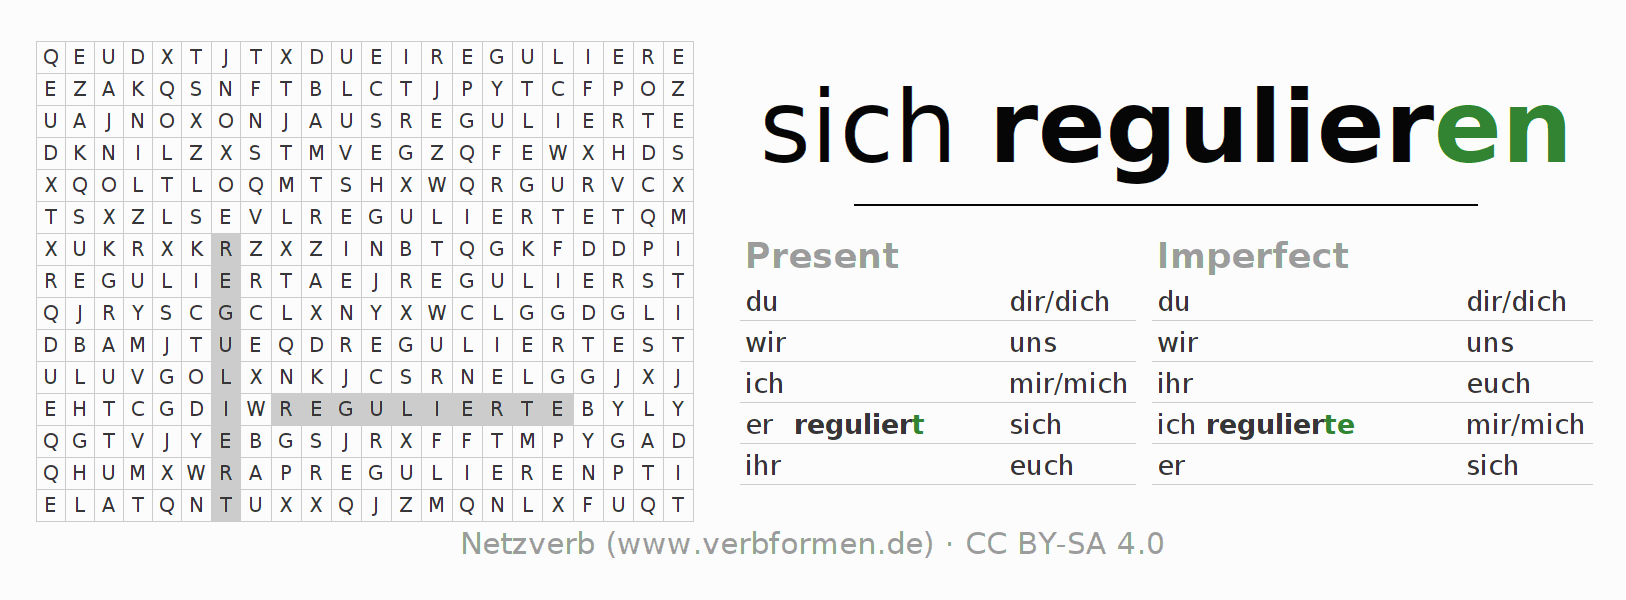 Word search puzzle for the conjugation of the verb sich regulieren